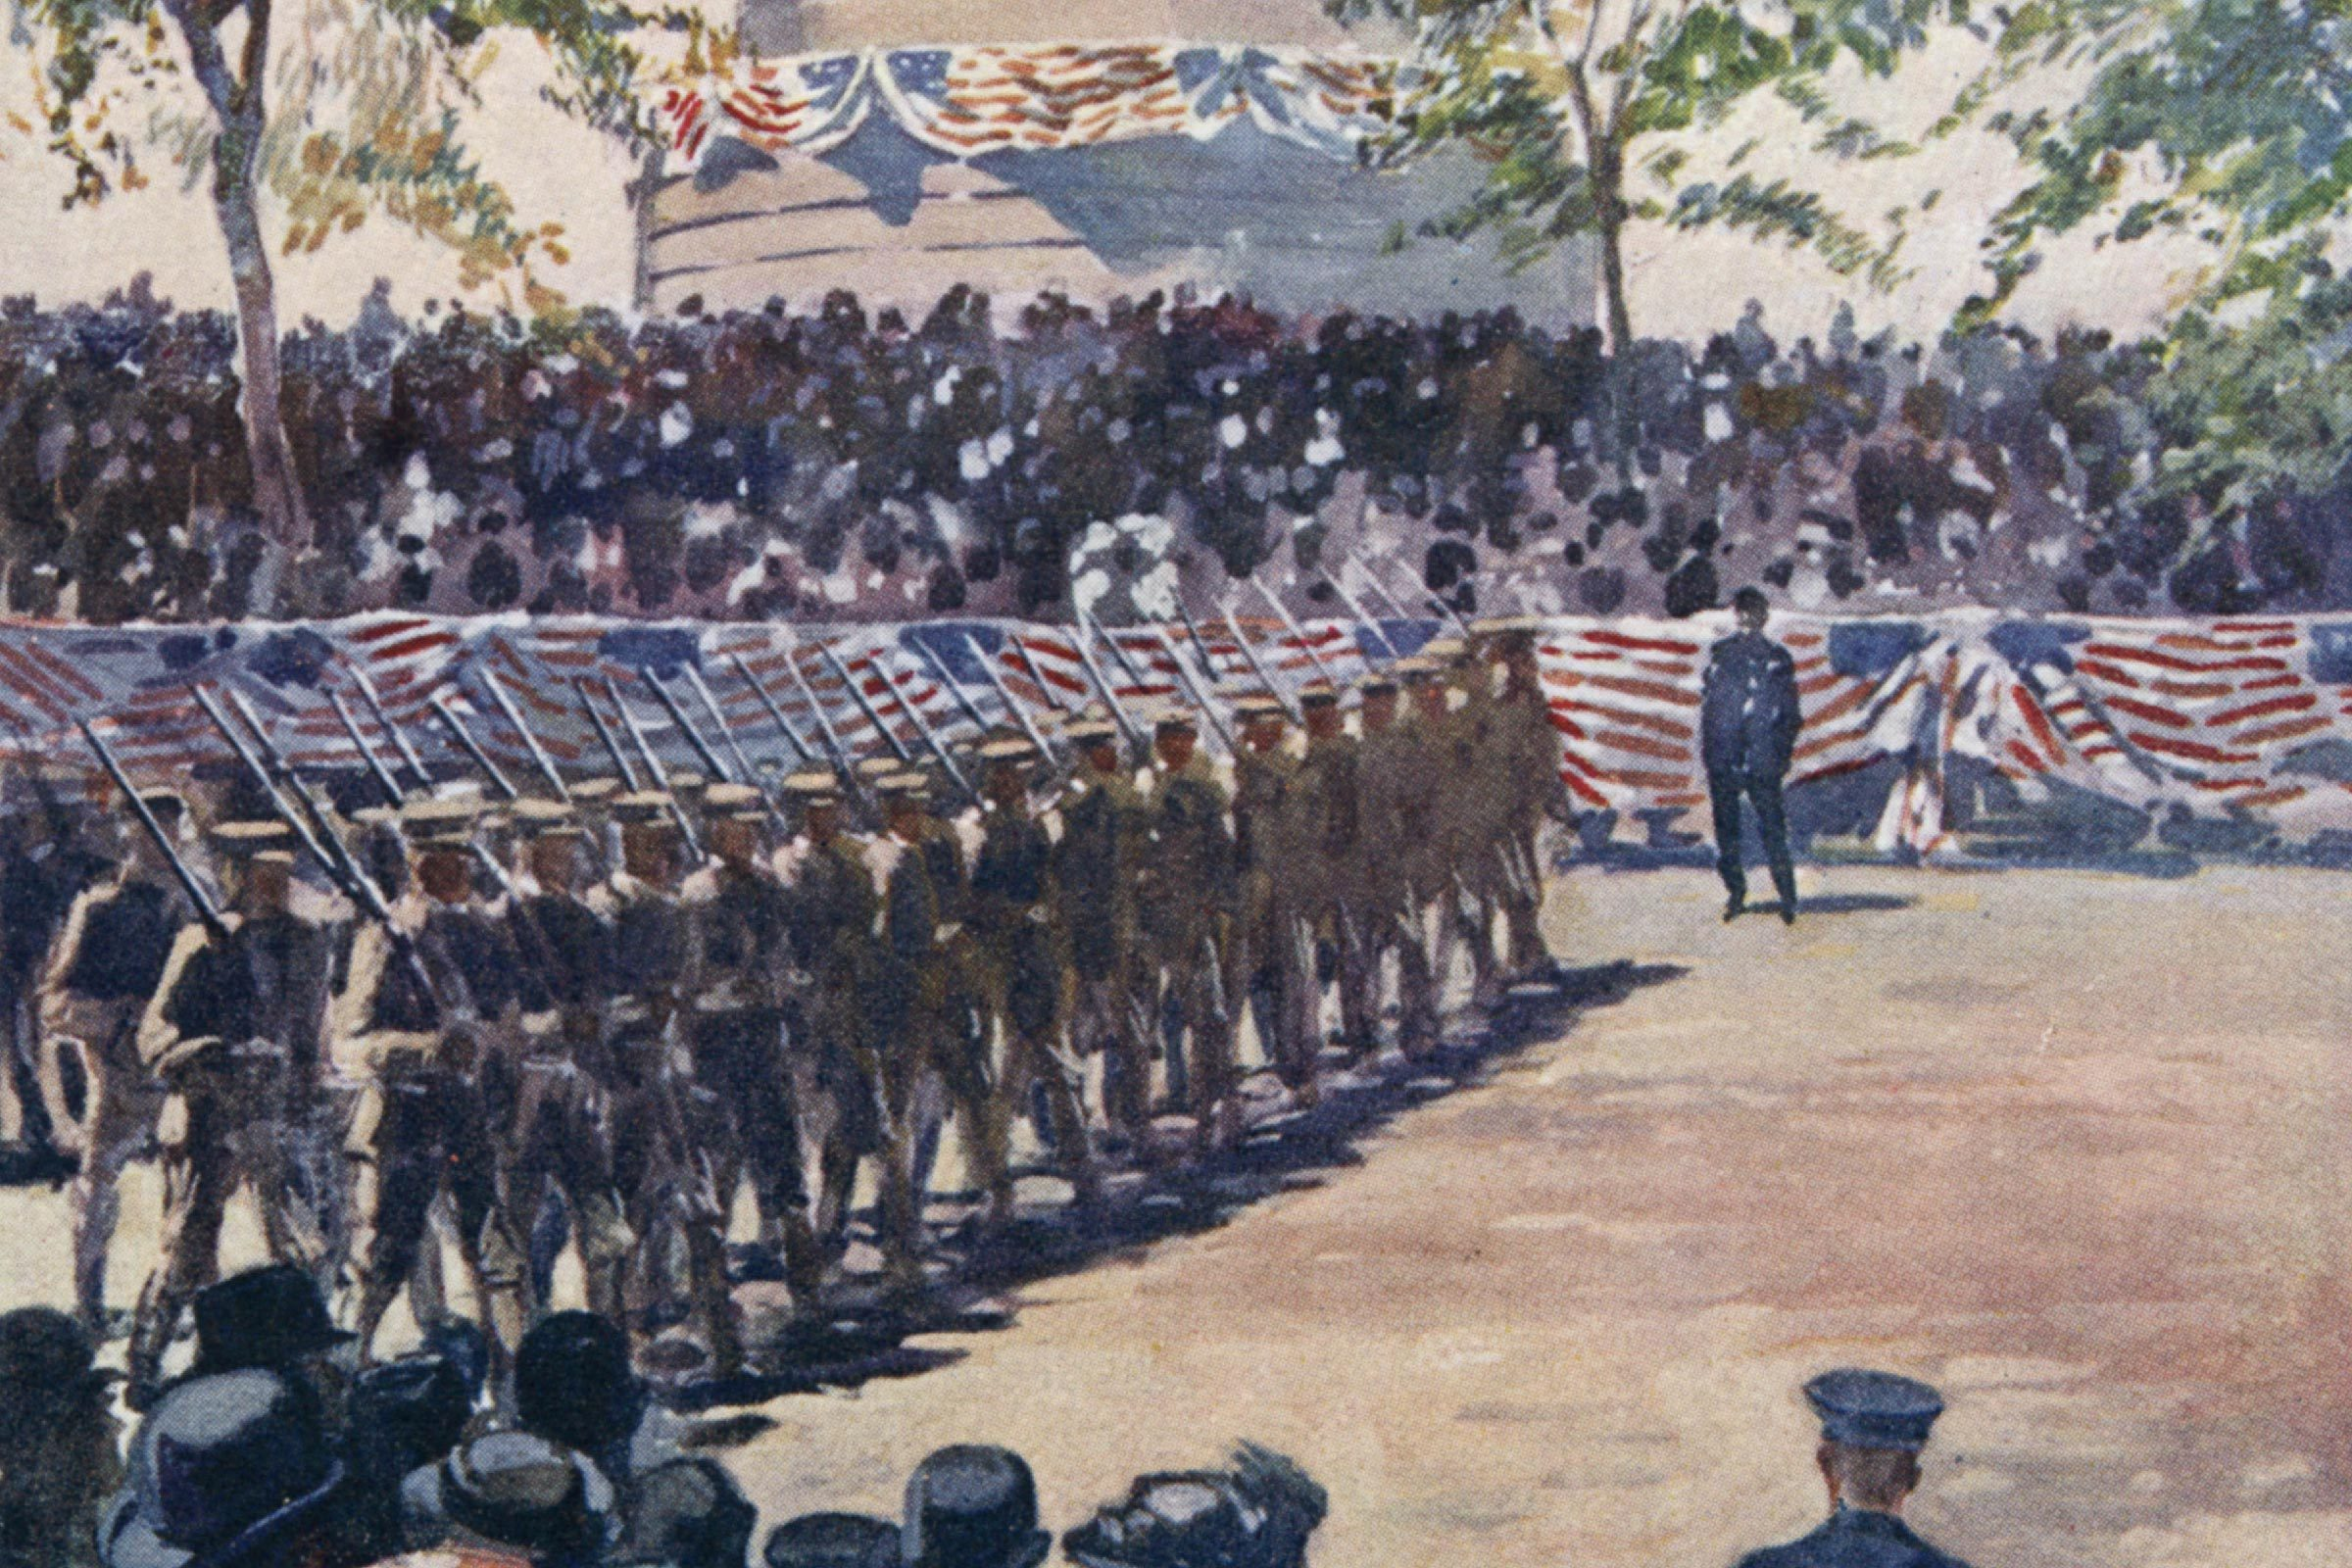 (also Known As Memory Or Memorial Day) Parade to Honour Those Who Died in Wars - Originally the War Between the States Subsequently Other Wars : On Riverside Drive Ny 30-May-10